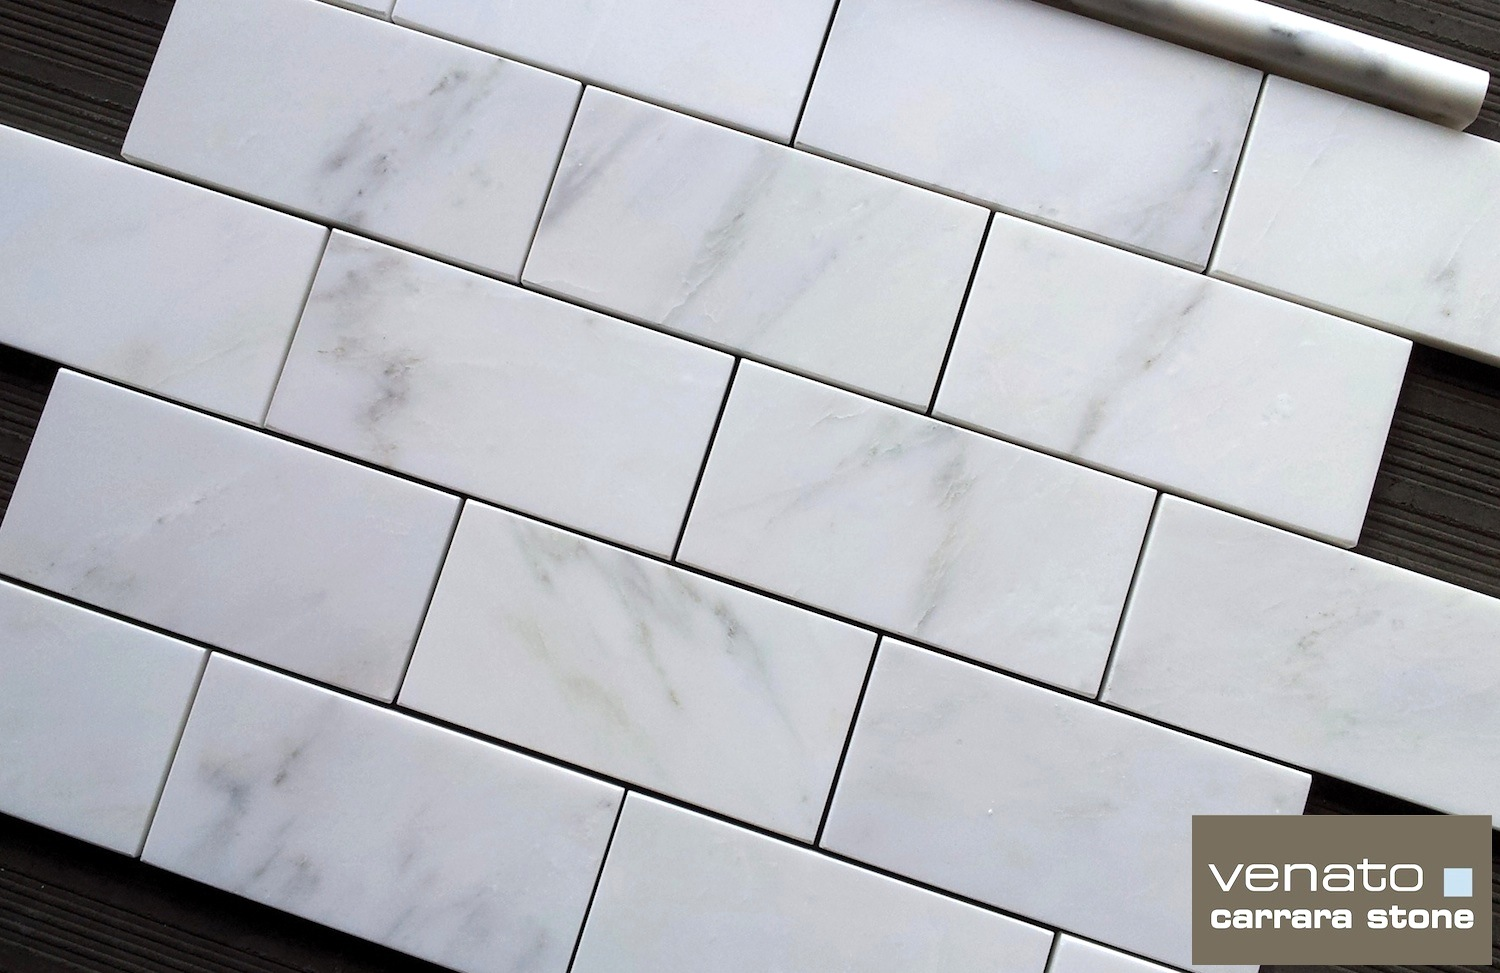 Carrara venato 36 subway tile honed only 7sf the builder venato 3x6 dailygadgetfo Choice Image